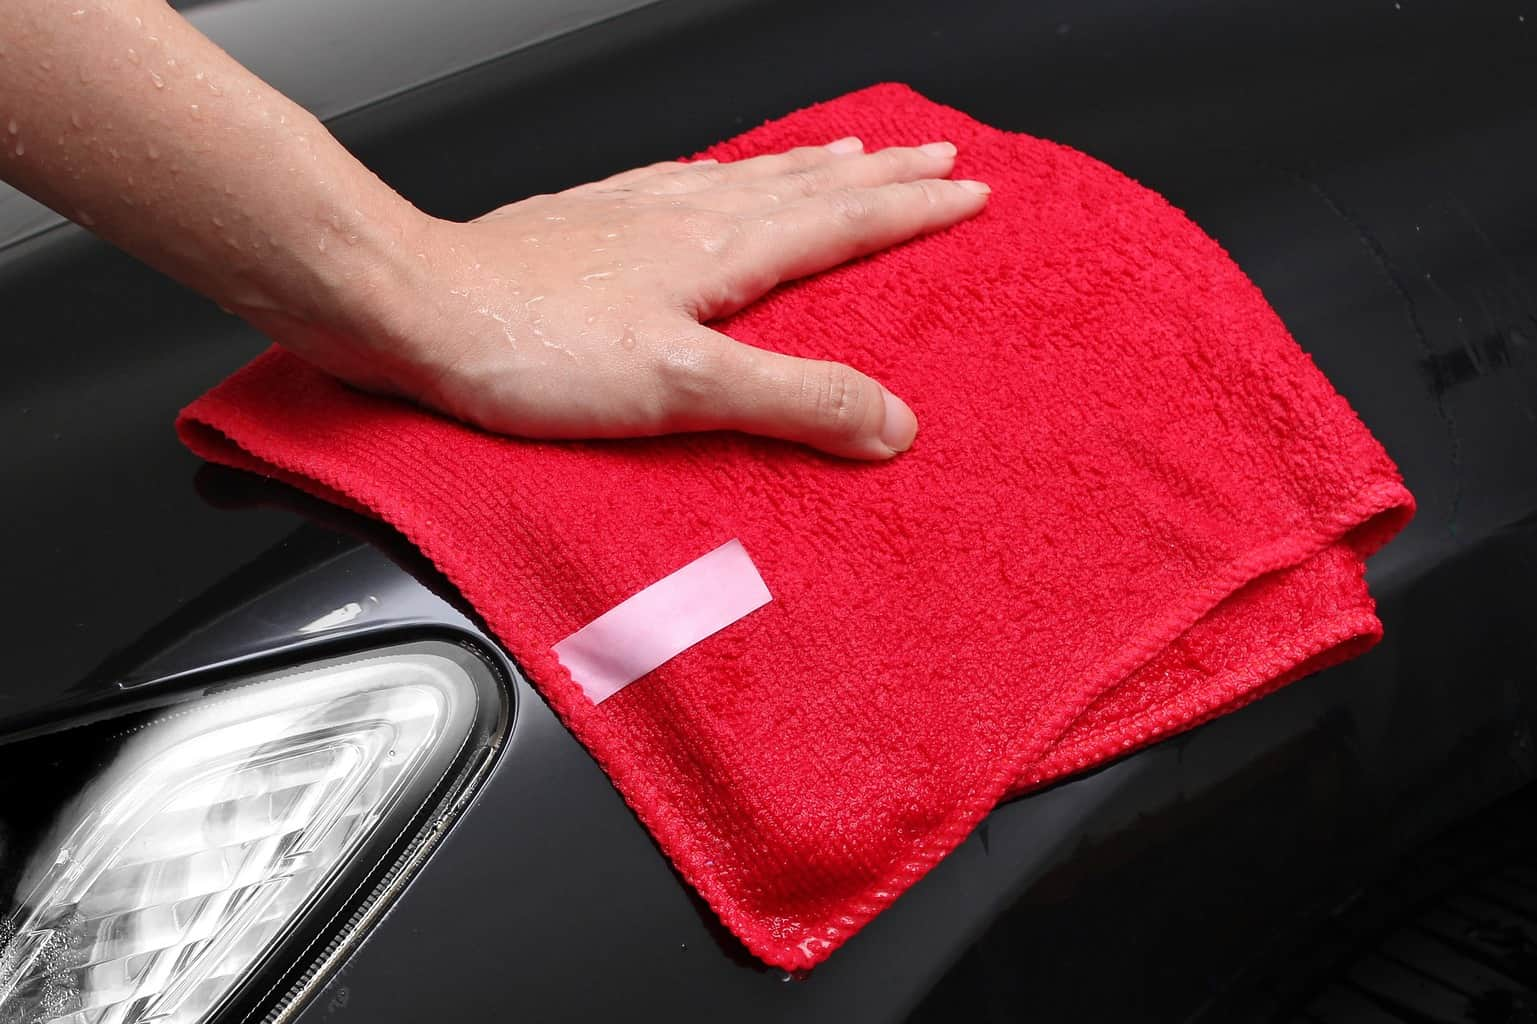 Wiping the headlights of a car with a red towel